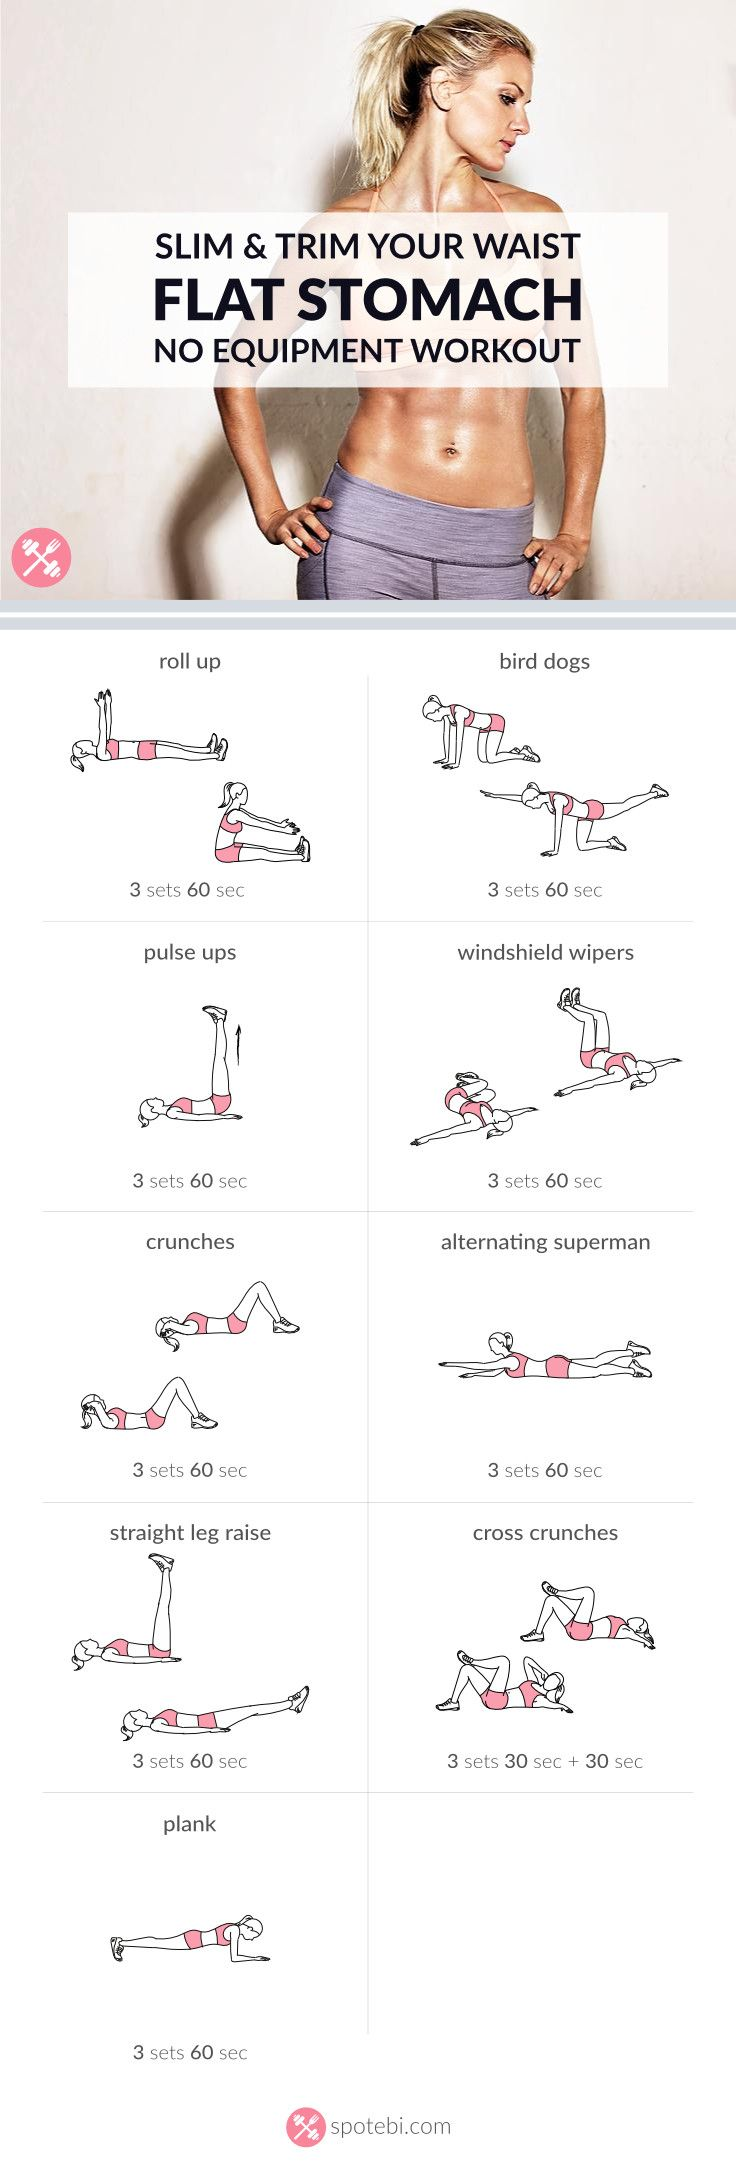 Slim Trim Your Waist Flat Stomach No Equipment Workout 8b1a13b63f8ae8944d61411f5a3c53d8